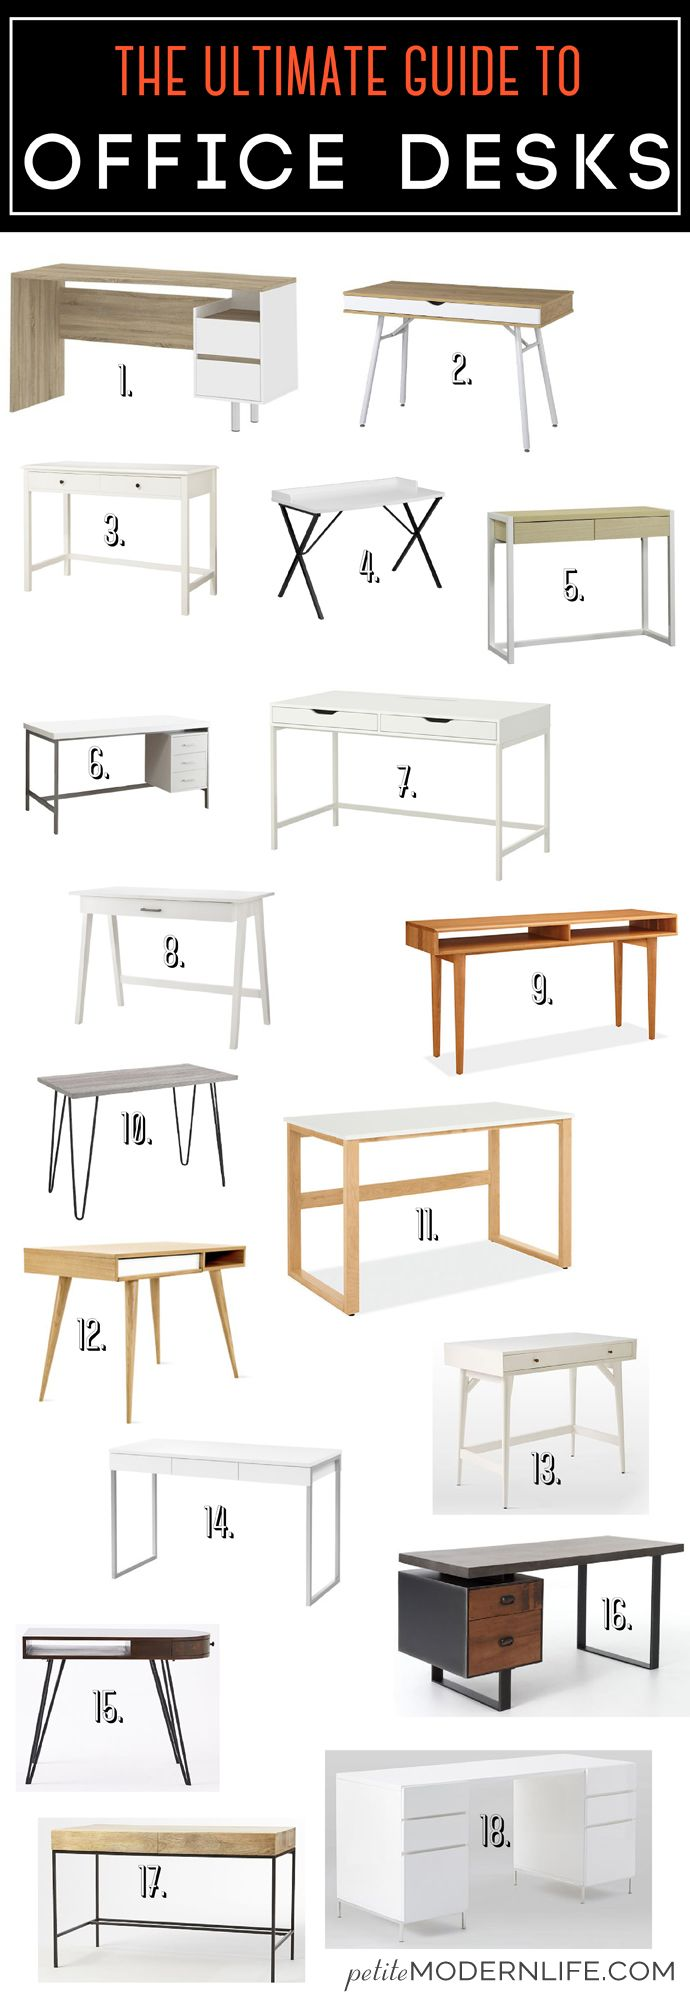 The Ultimate Guide For Modern Office Desks On Petite Modern Life: 18 Styles  / 5